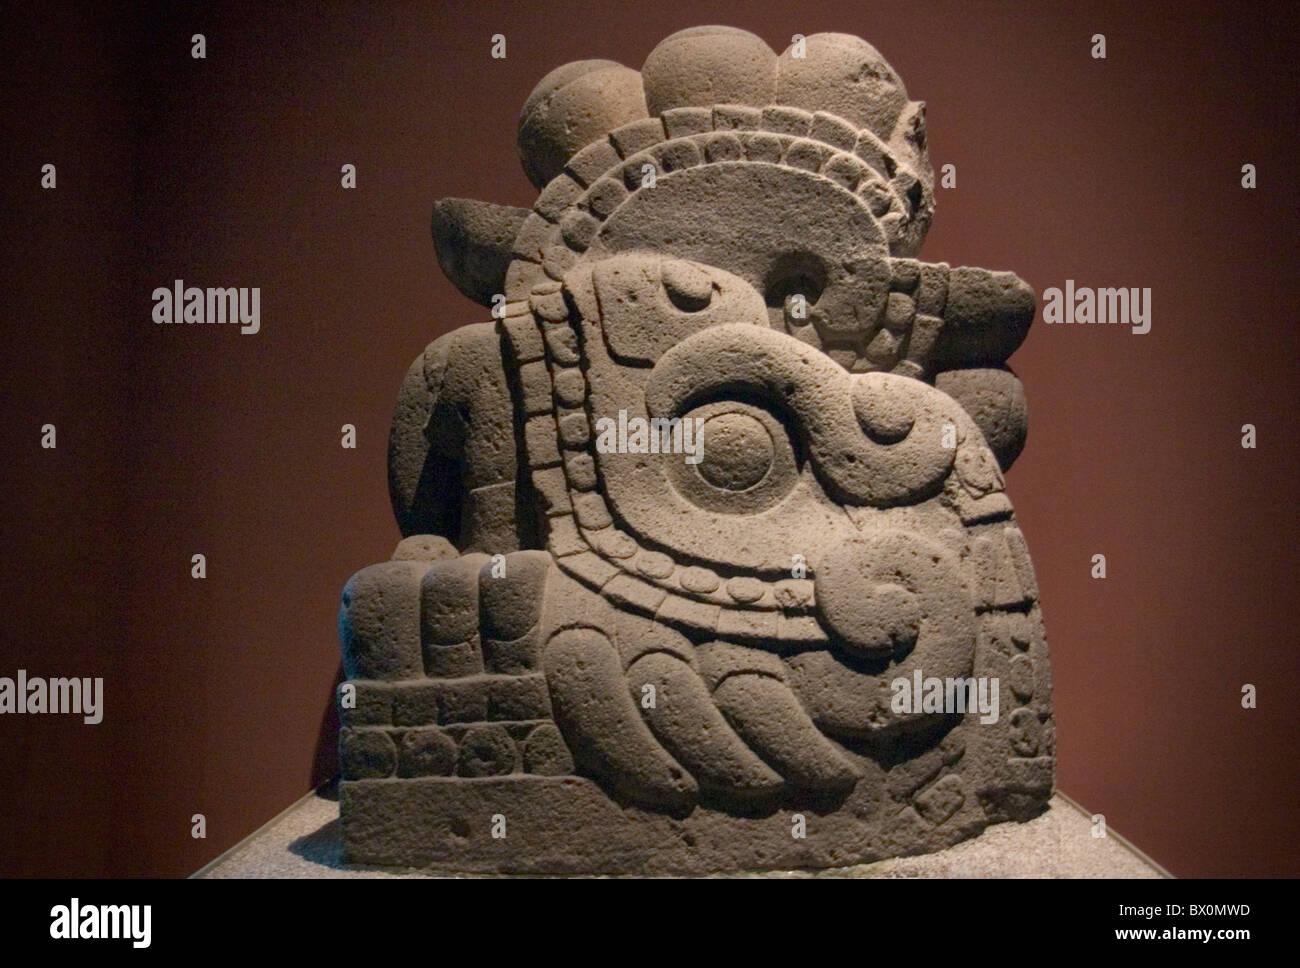 Aztec, Mexica, fire serpent god Xiuhcoatl statue found in the the Templo Mayor, National Museum of Anthropology - Stock Image